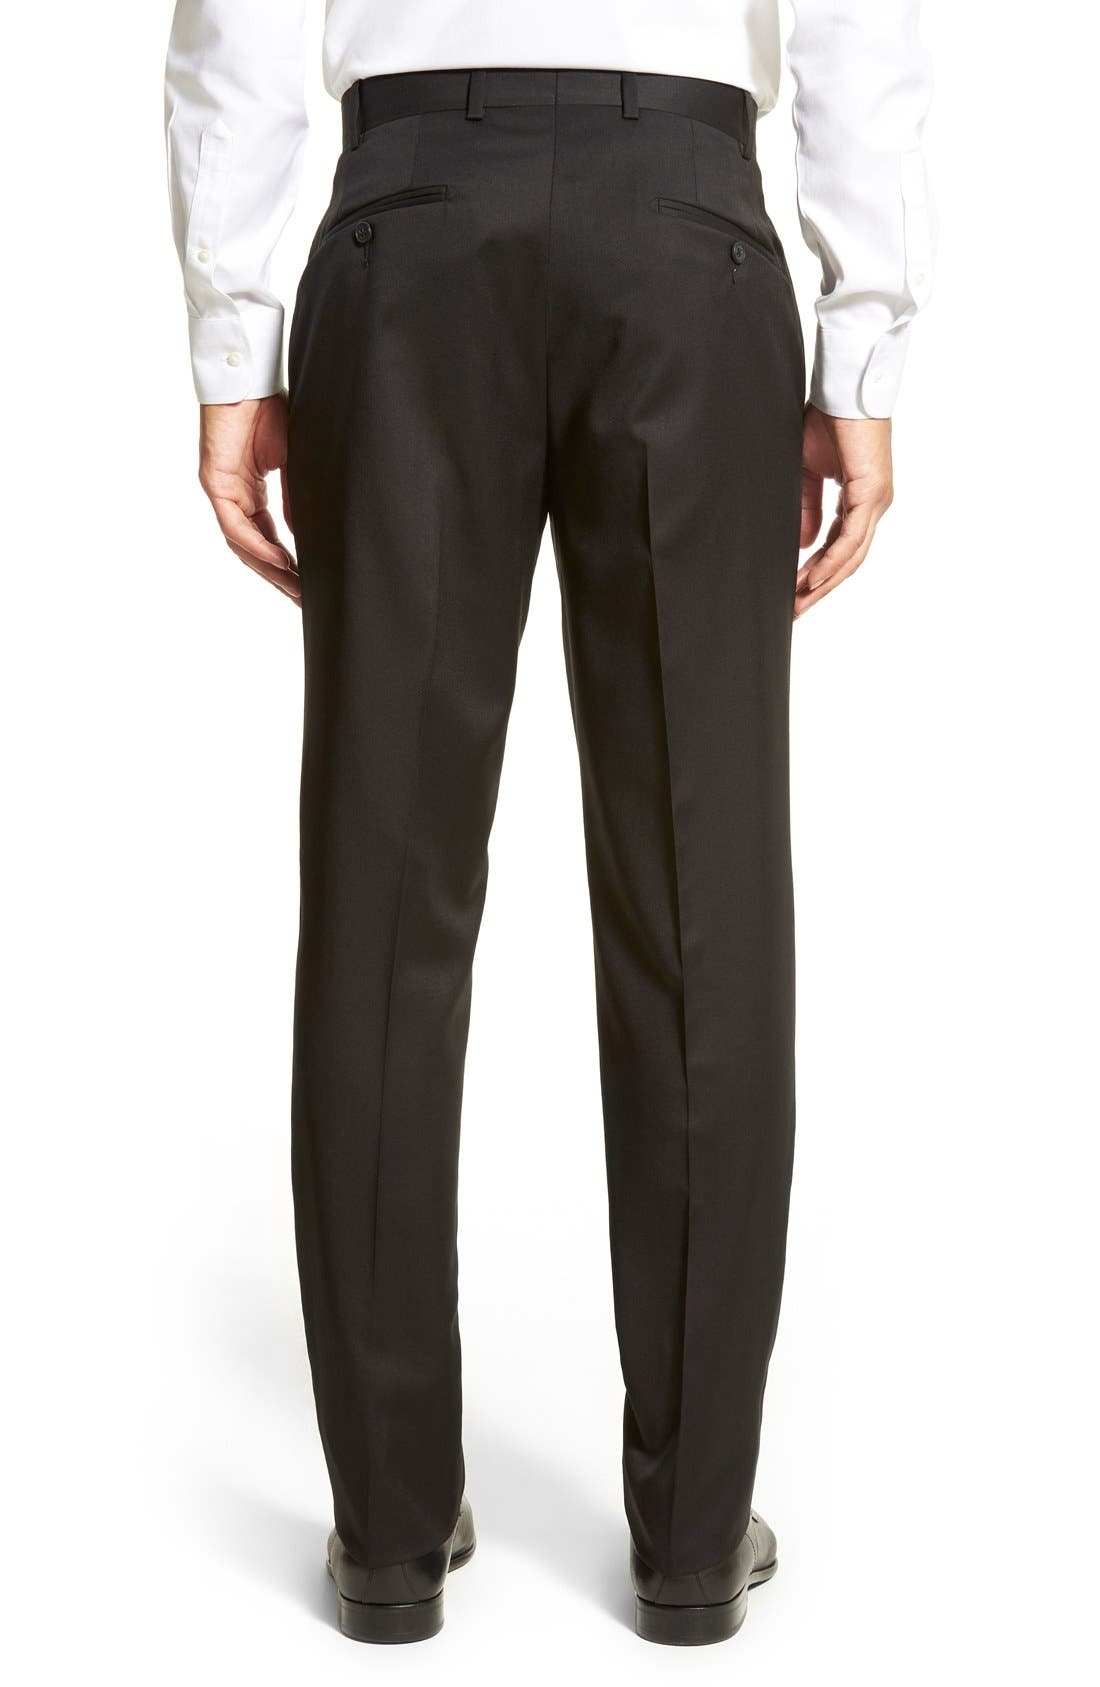 DI MILANO UOMO,                             'Torino' Flat Front Solid Wool Trousers,                             Alternate thumbnail 5, color,                             001